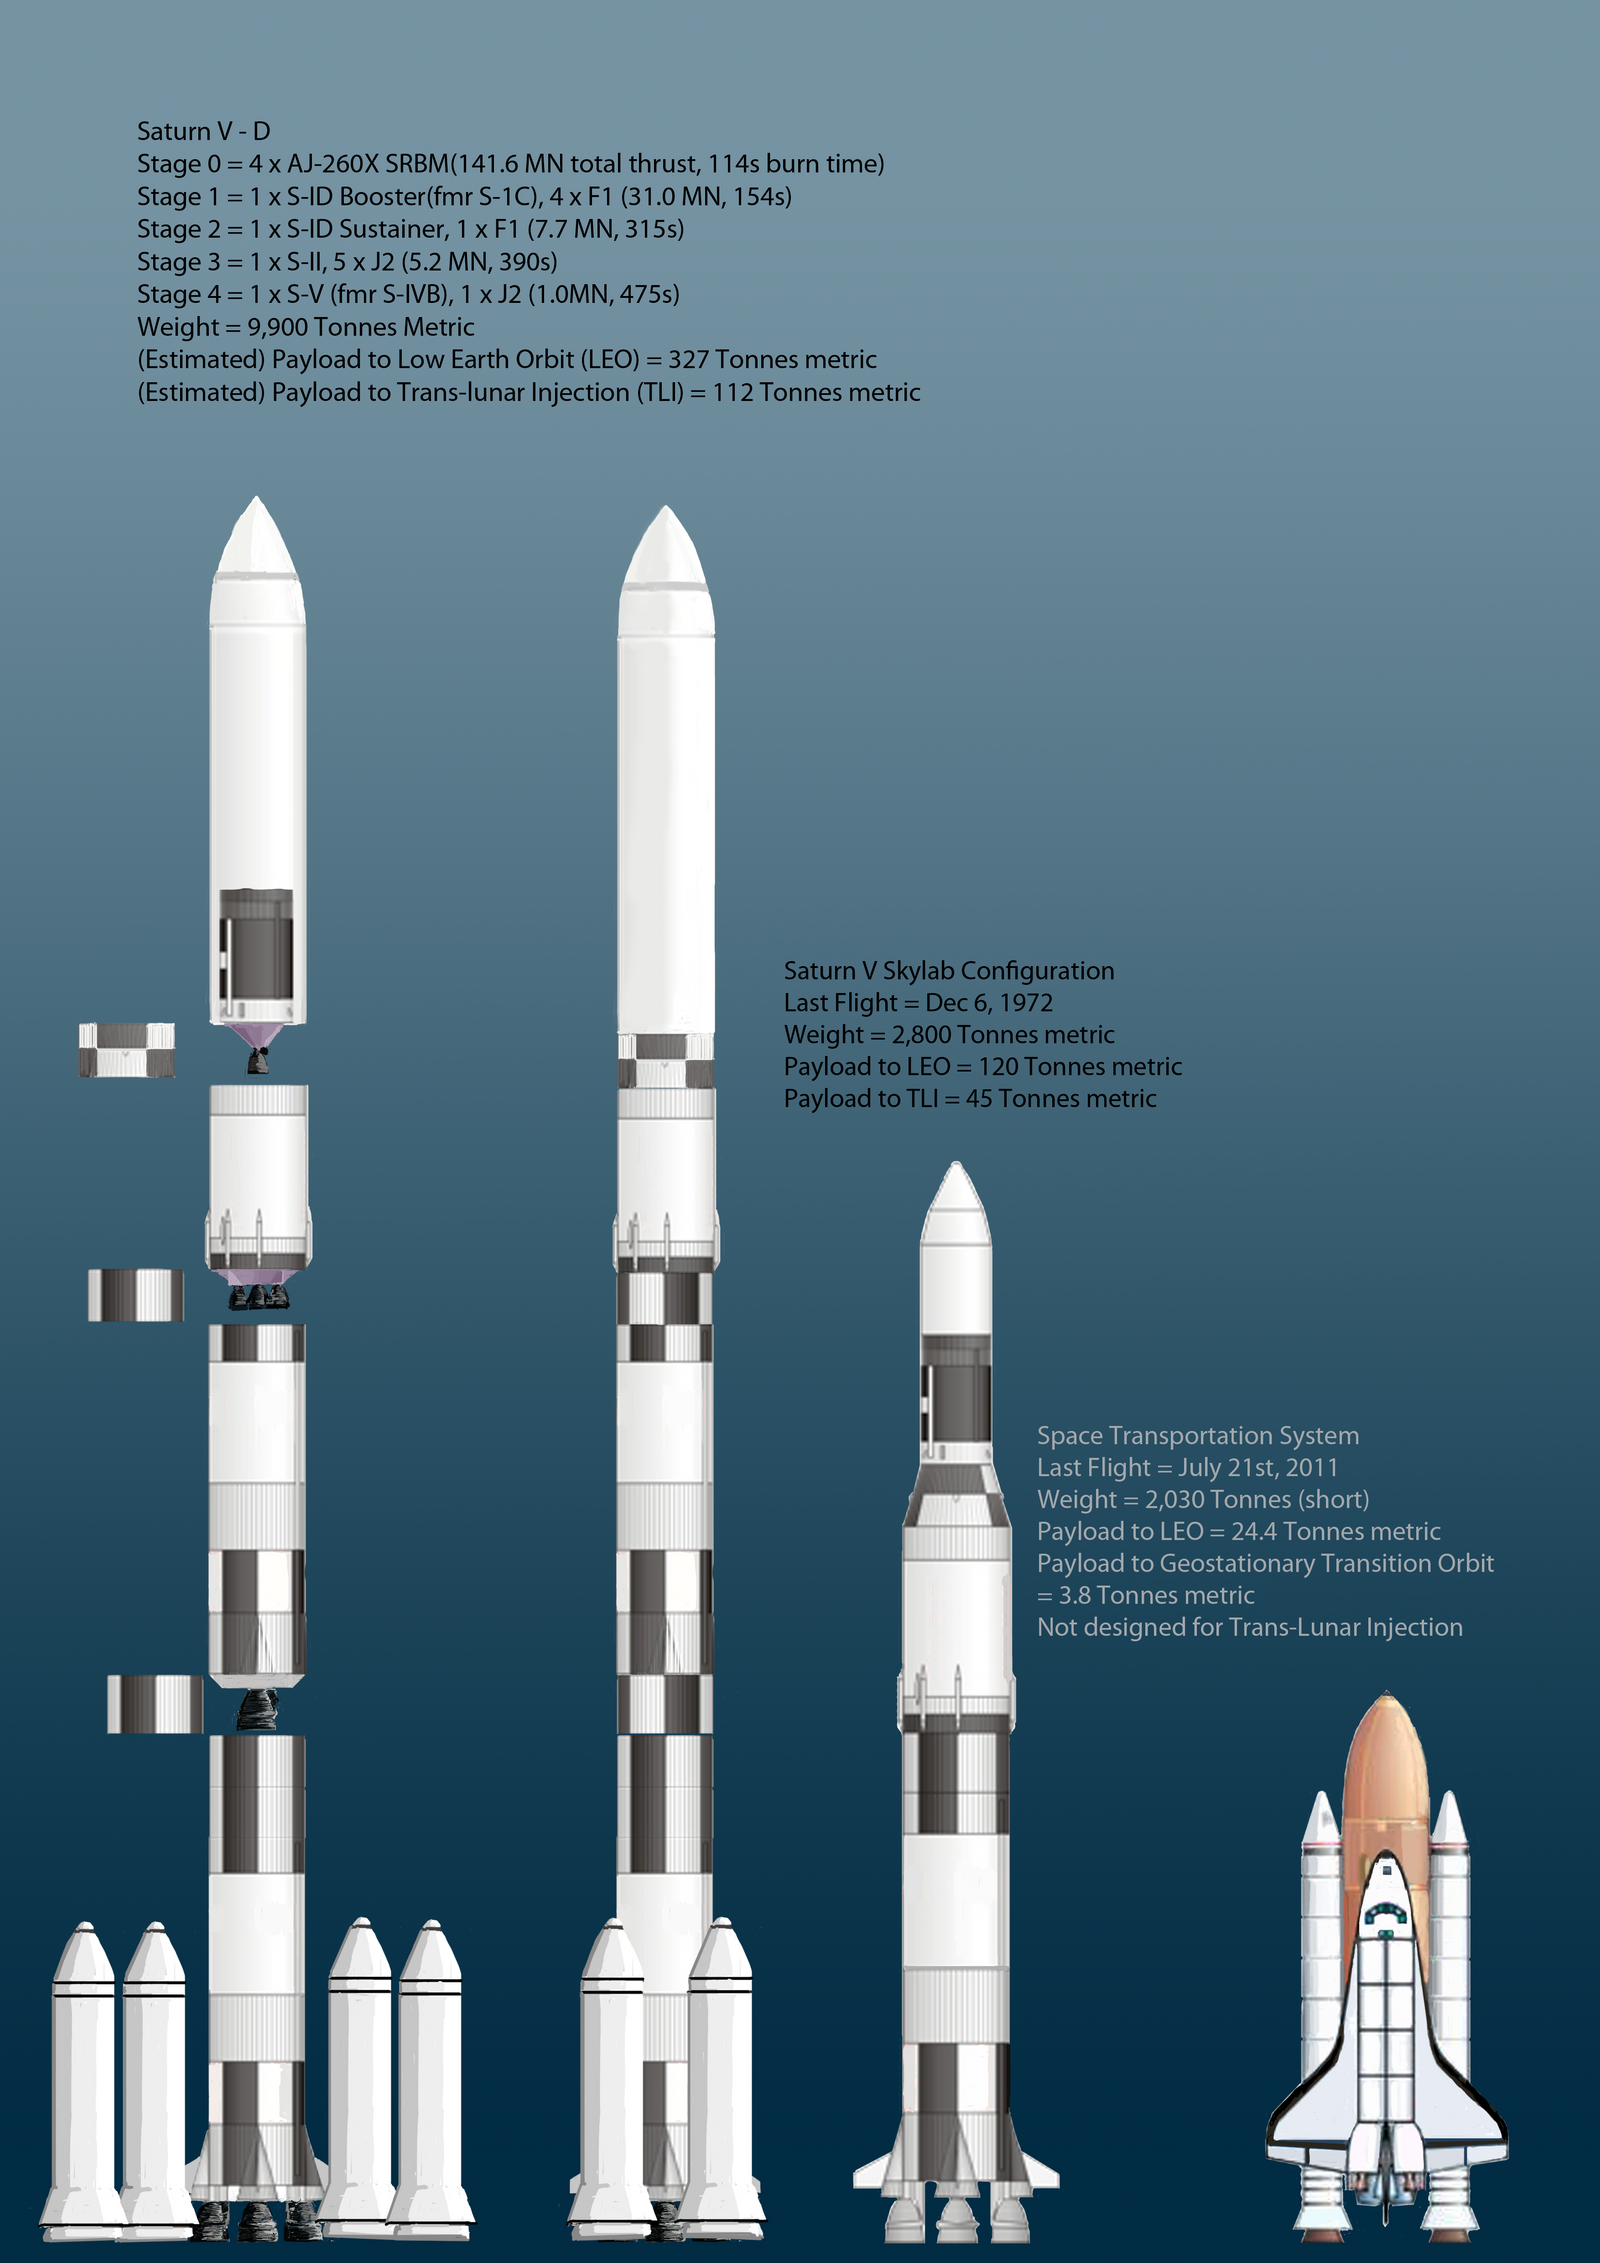 Saturn V-D 330 Tonne metric Payload by SoFDMC on DeviantArt